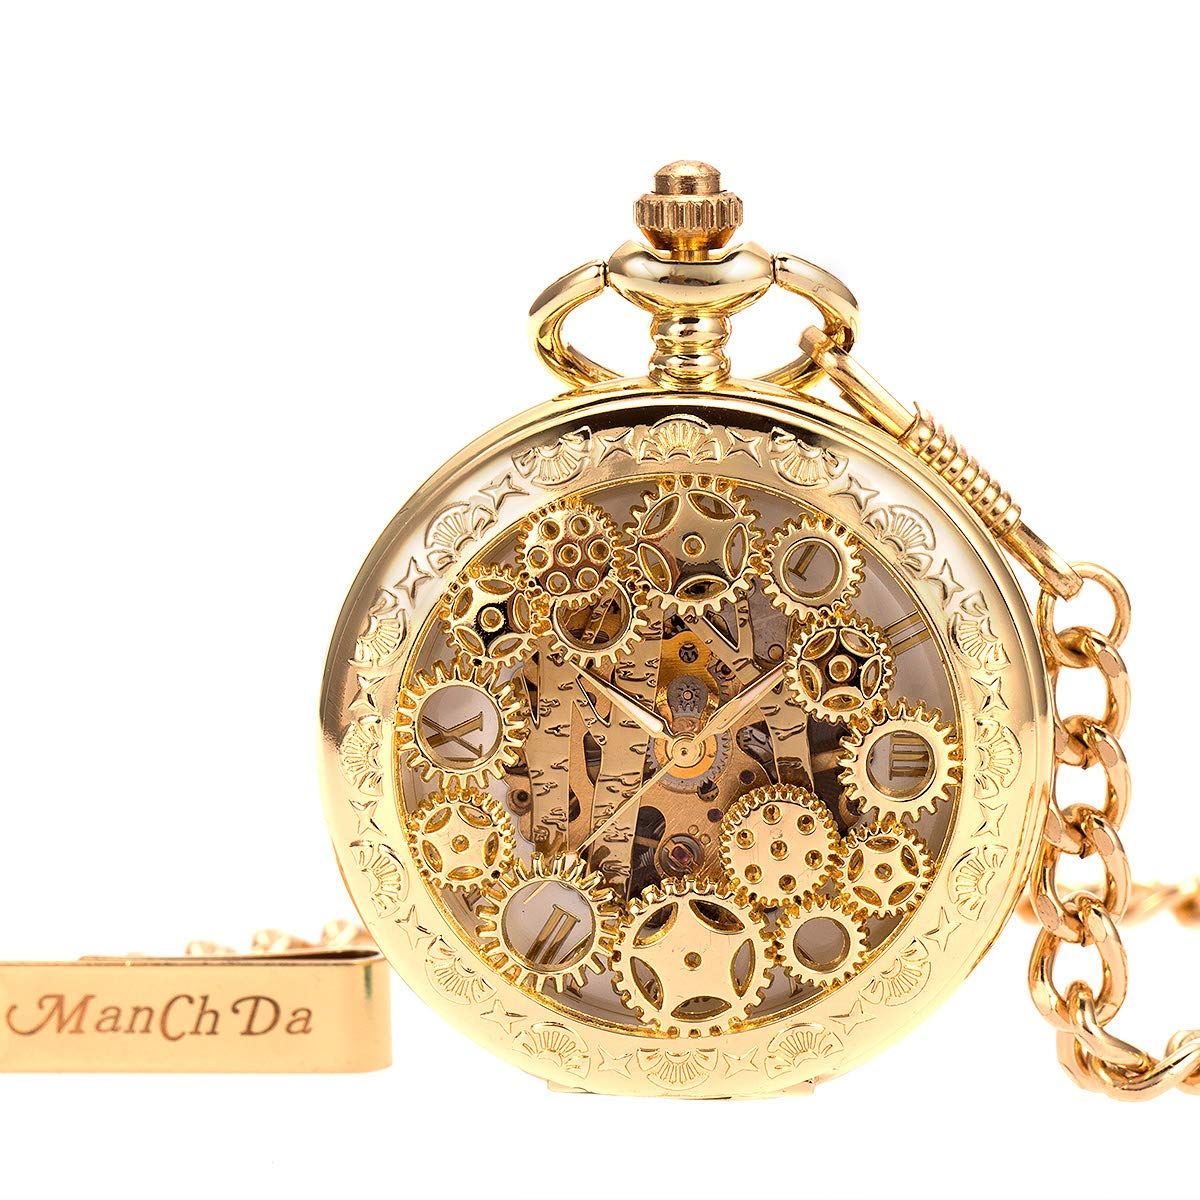 ManChDa Steampumk Skeleton Mechanical Pocket Watch Mens Double Hunter Golden Roman Numerals with Chain by ManChDa